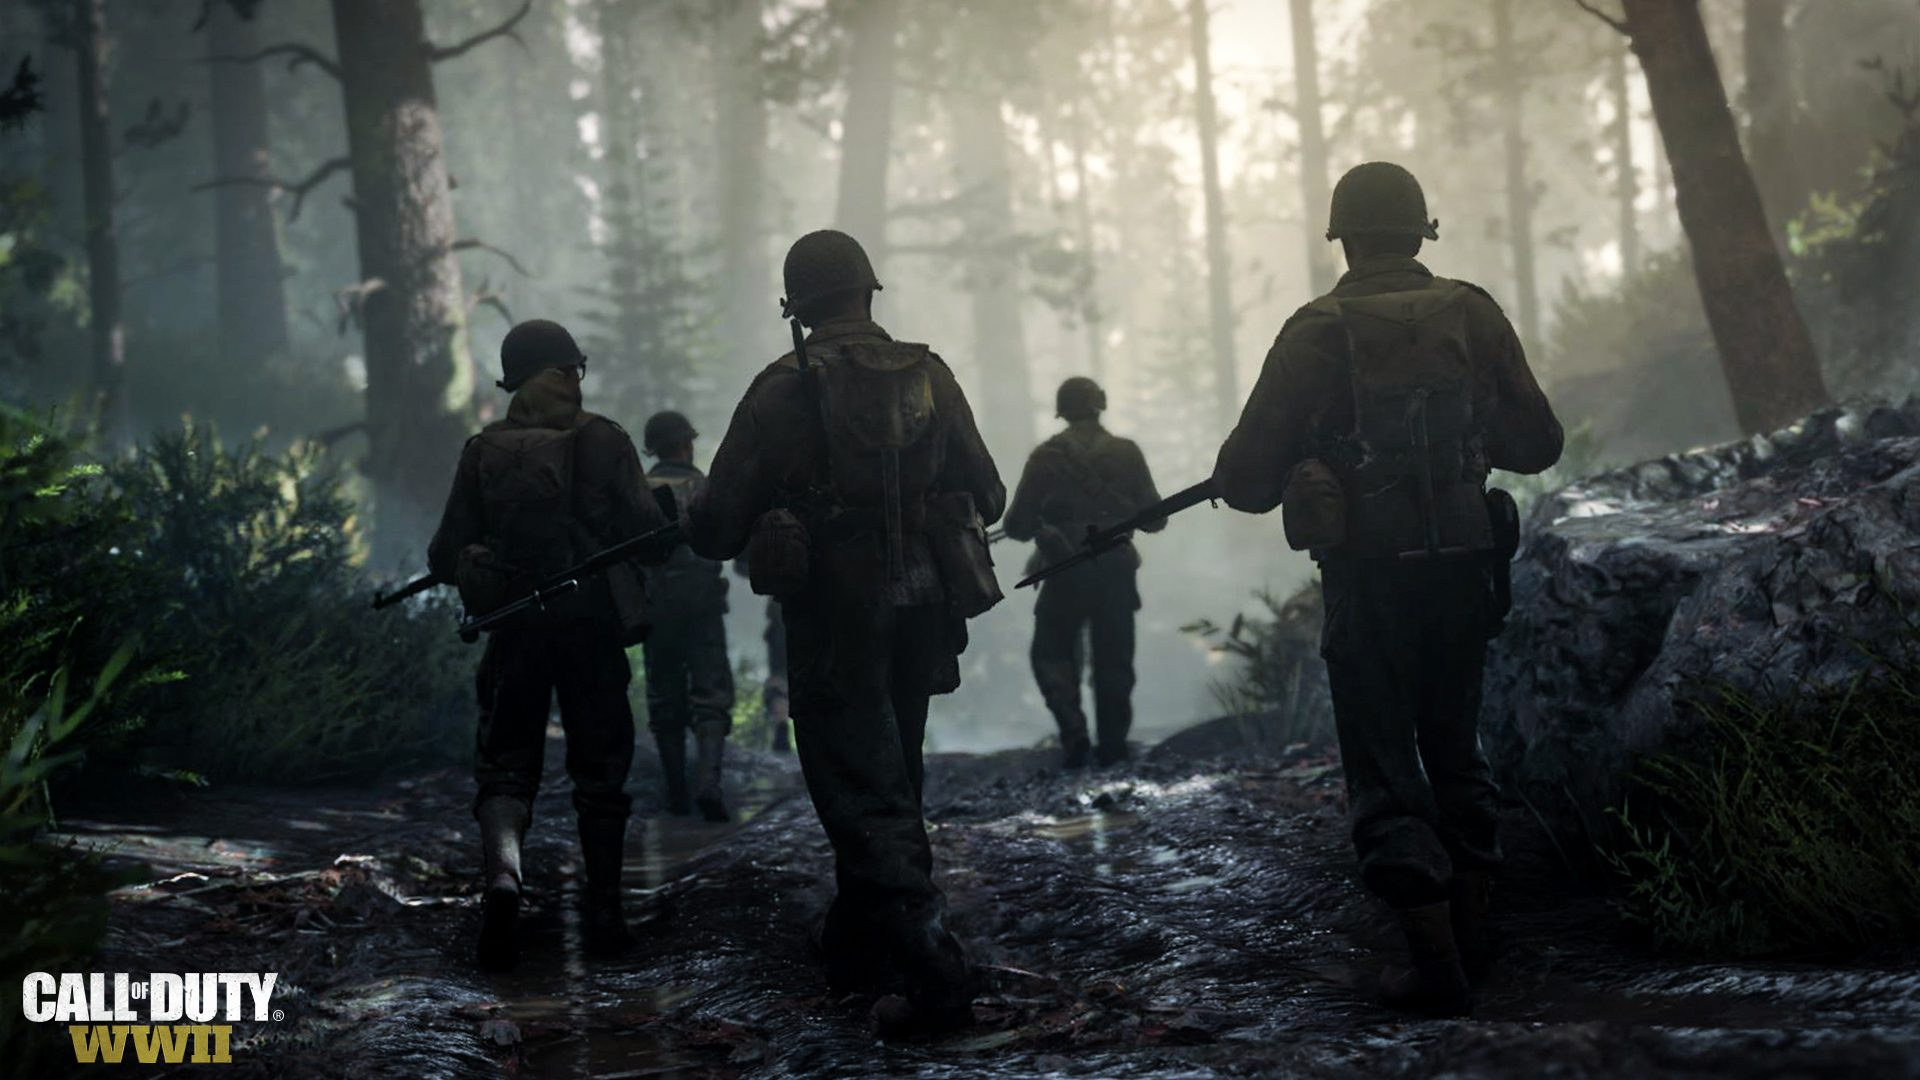 Call Of Duty 2021 Is Reportedly Called WWII: Vanguard.